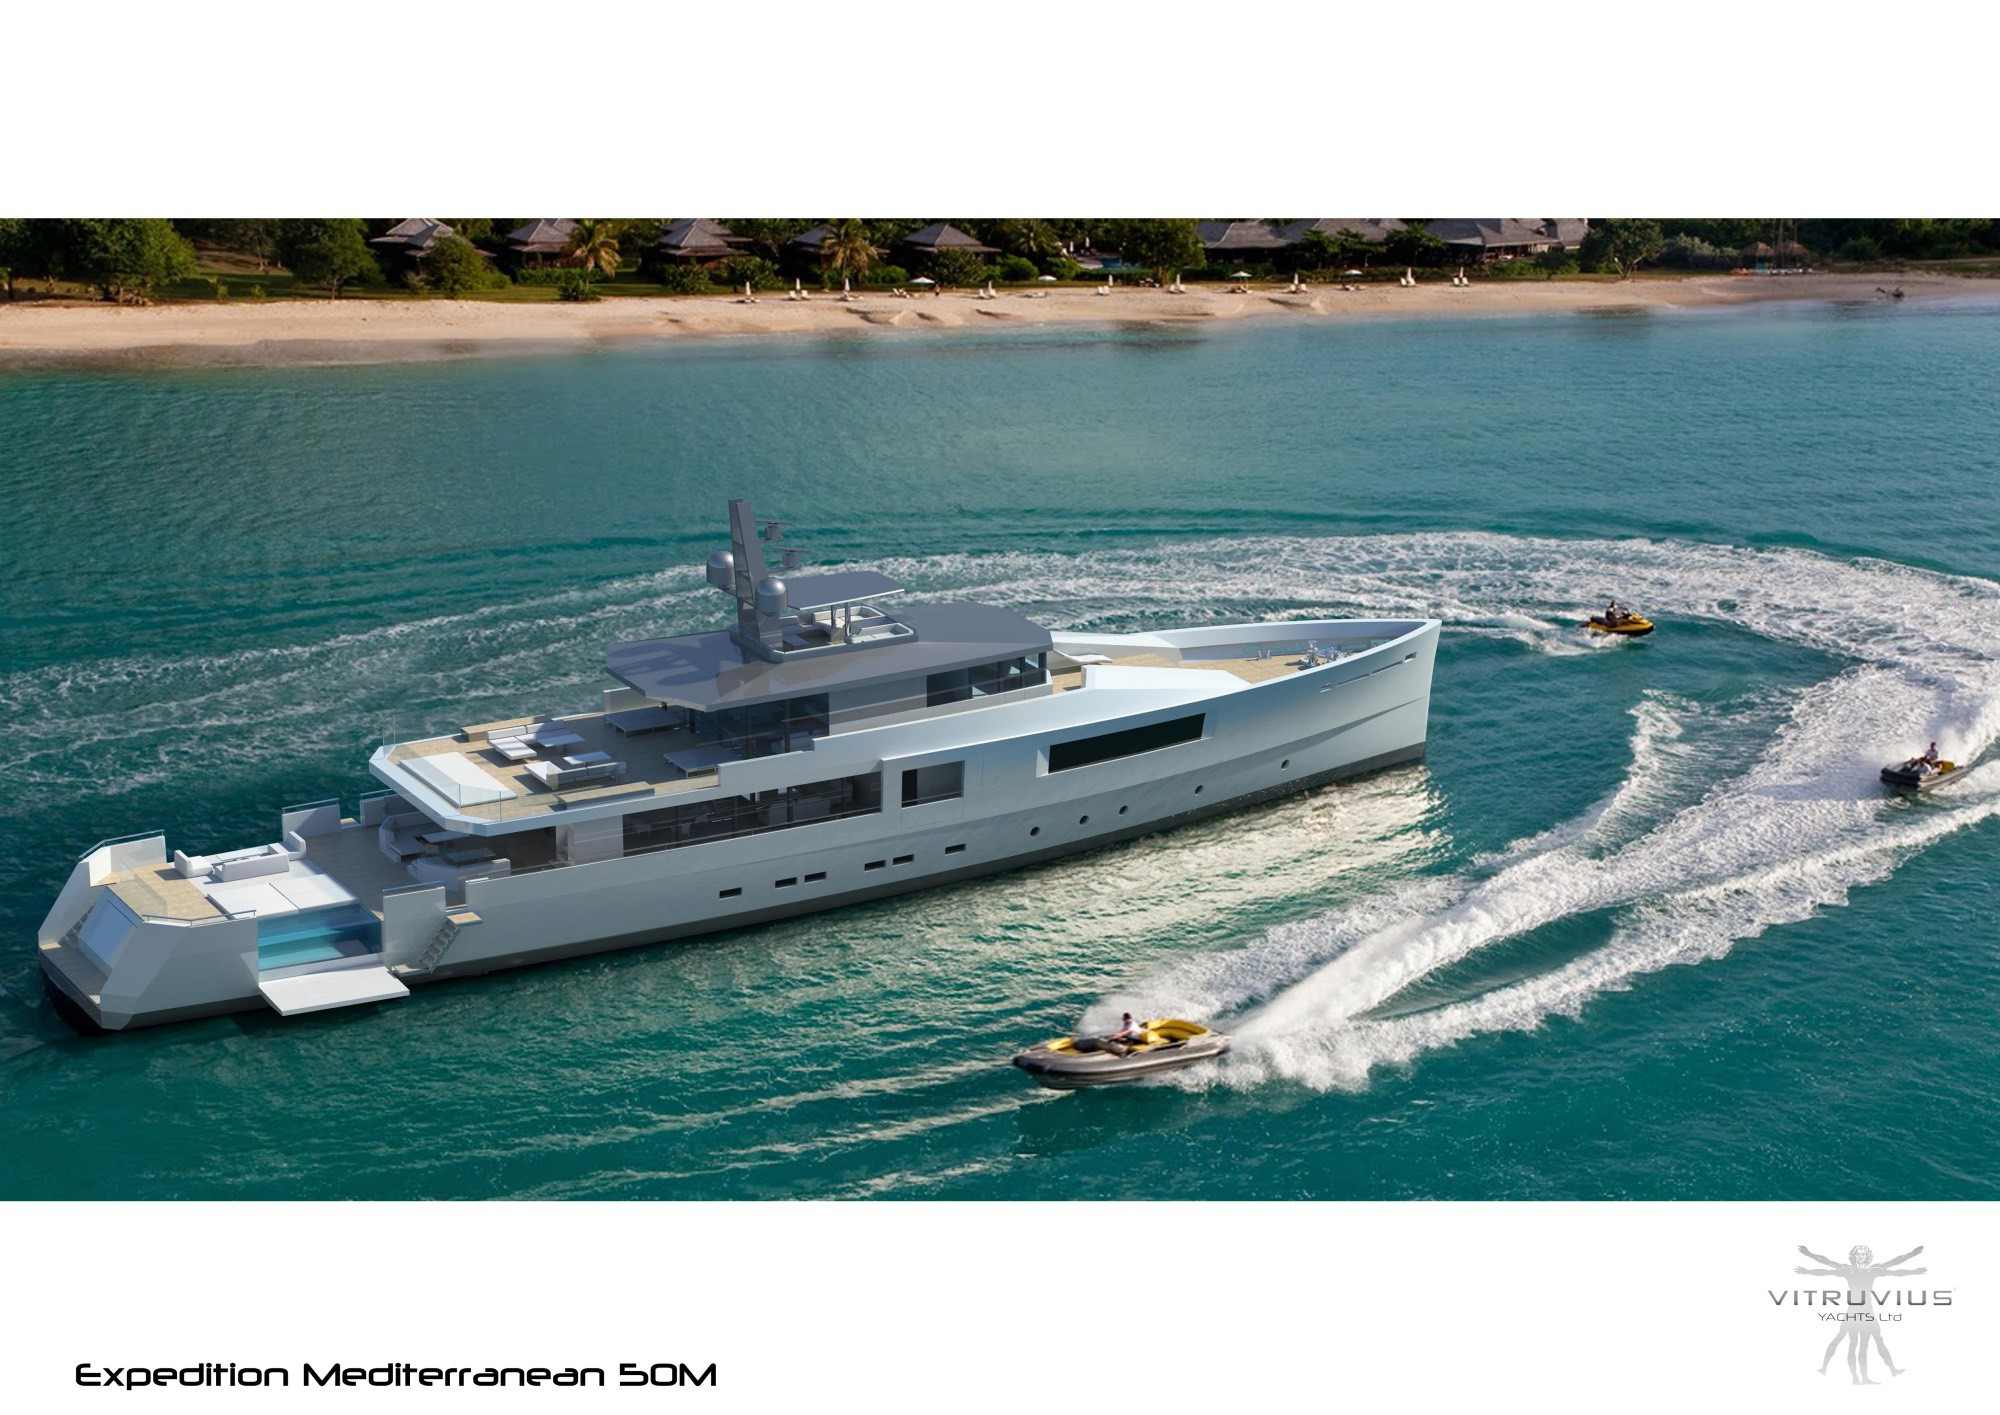 Whole range of explorer vessels offered by Vitruvius Yachts